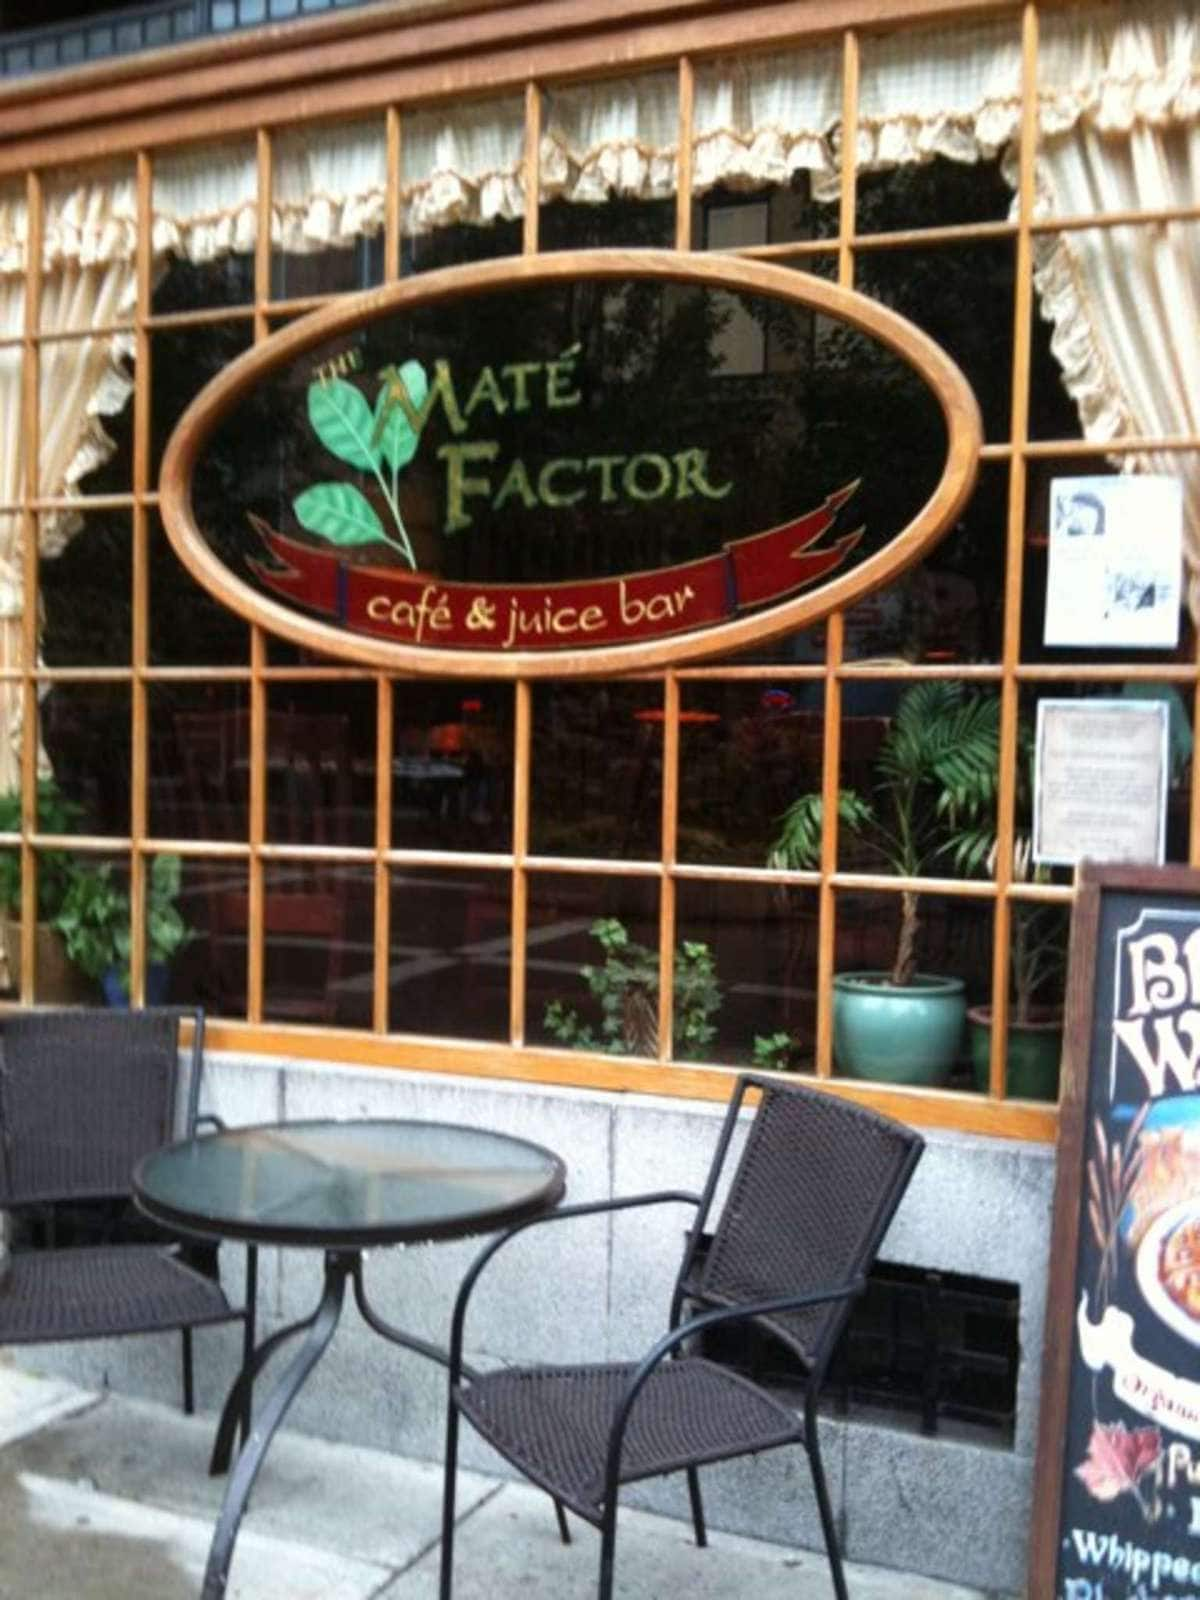 The Mate' Factor Cafe & Juice Bar